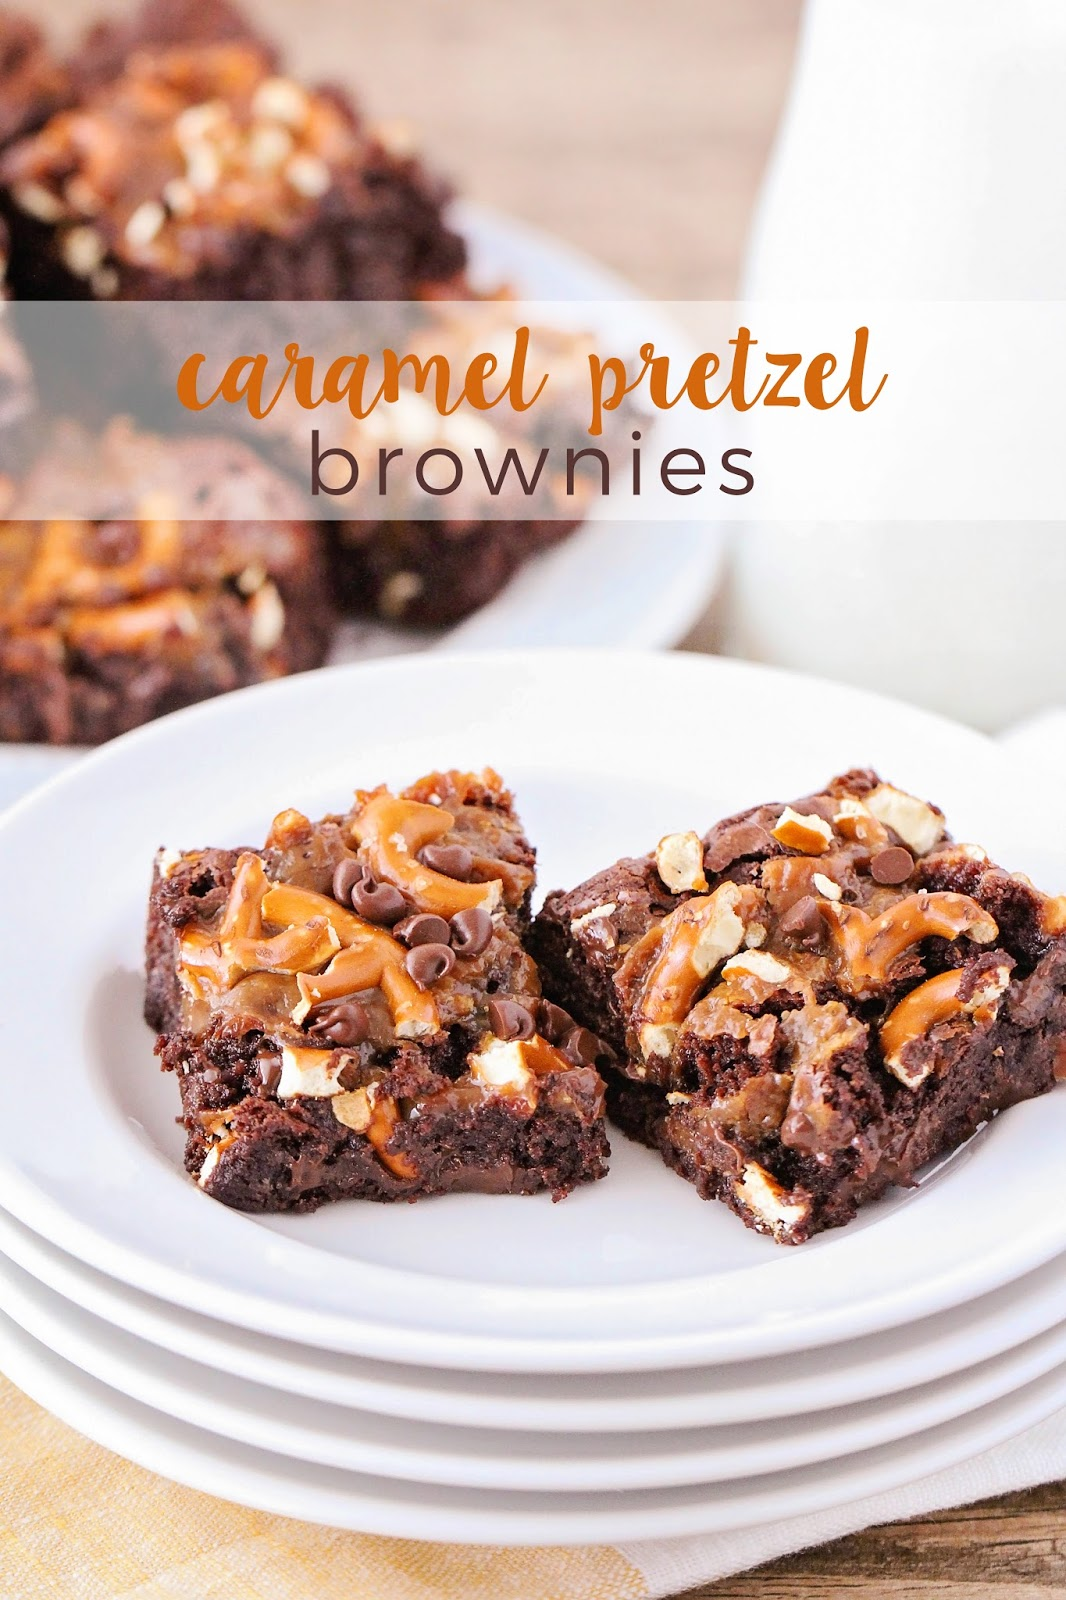 These rich and fudgy caramel pretzel brownies are the perfect mix of salty and sweet, and have an amazing texture. So chocolatey and delicious!